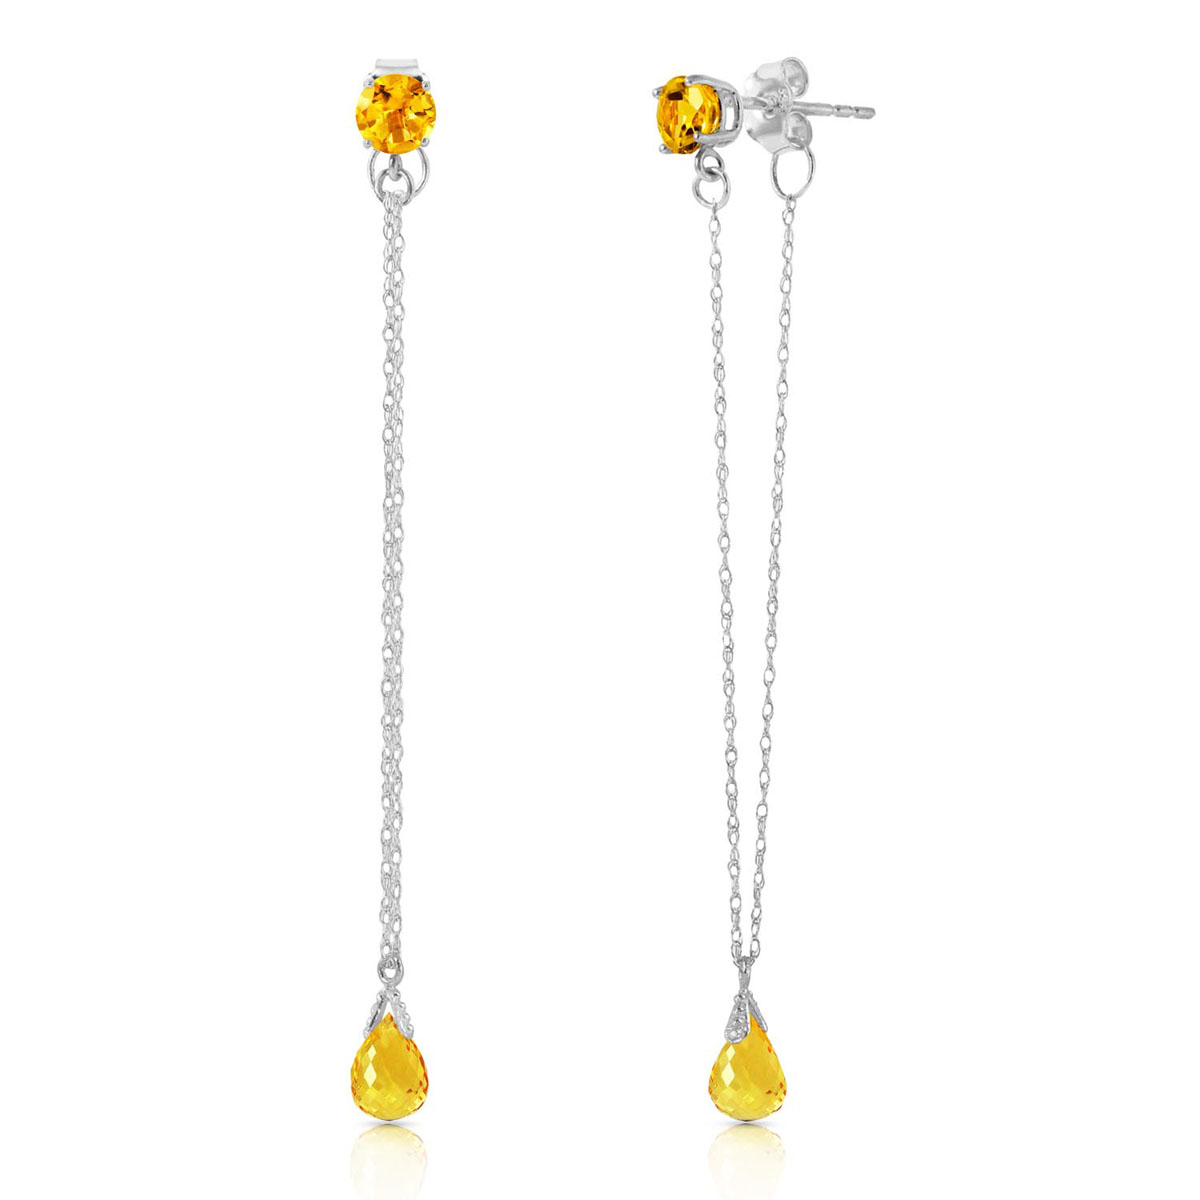 Citrine Monte Carlo Drop Earrings 3.15 ctw in 9ct White Gold